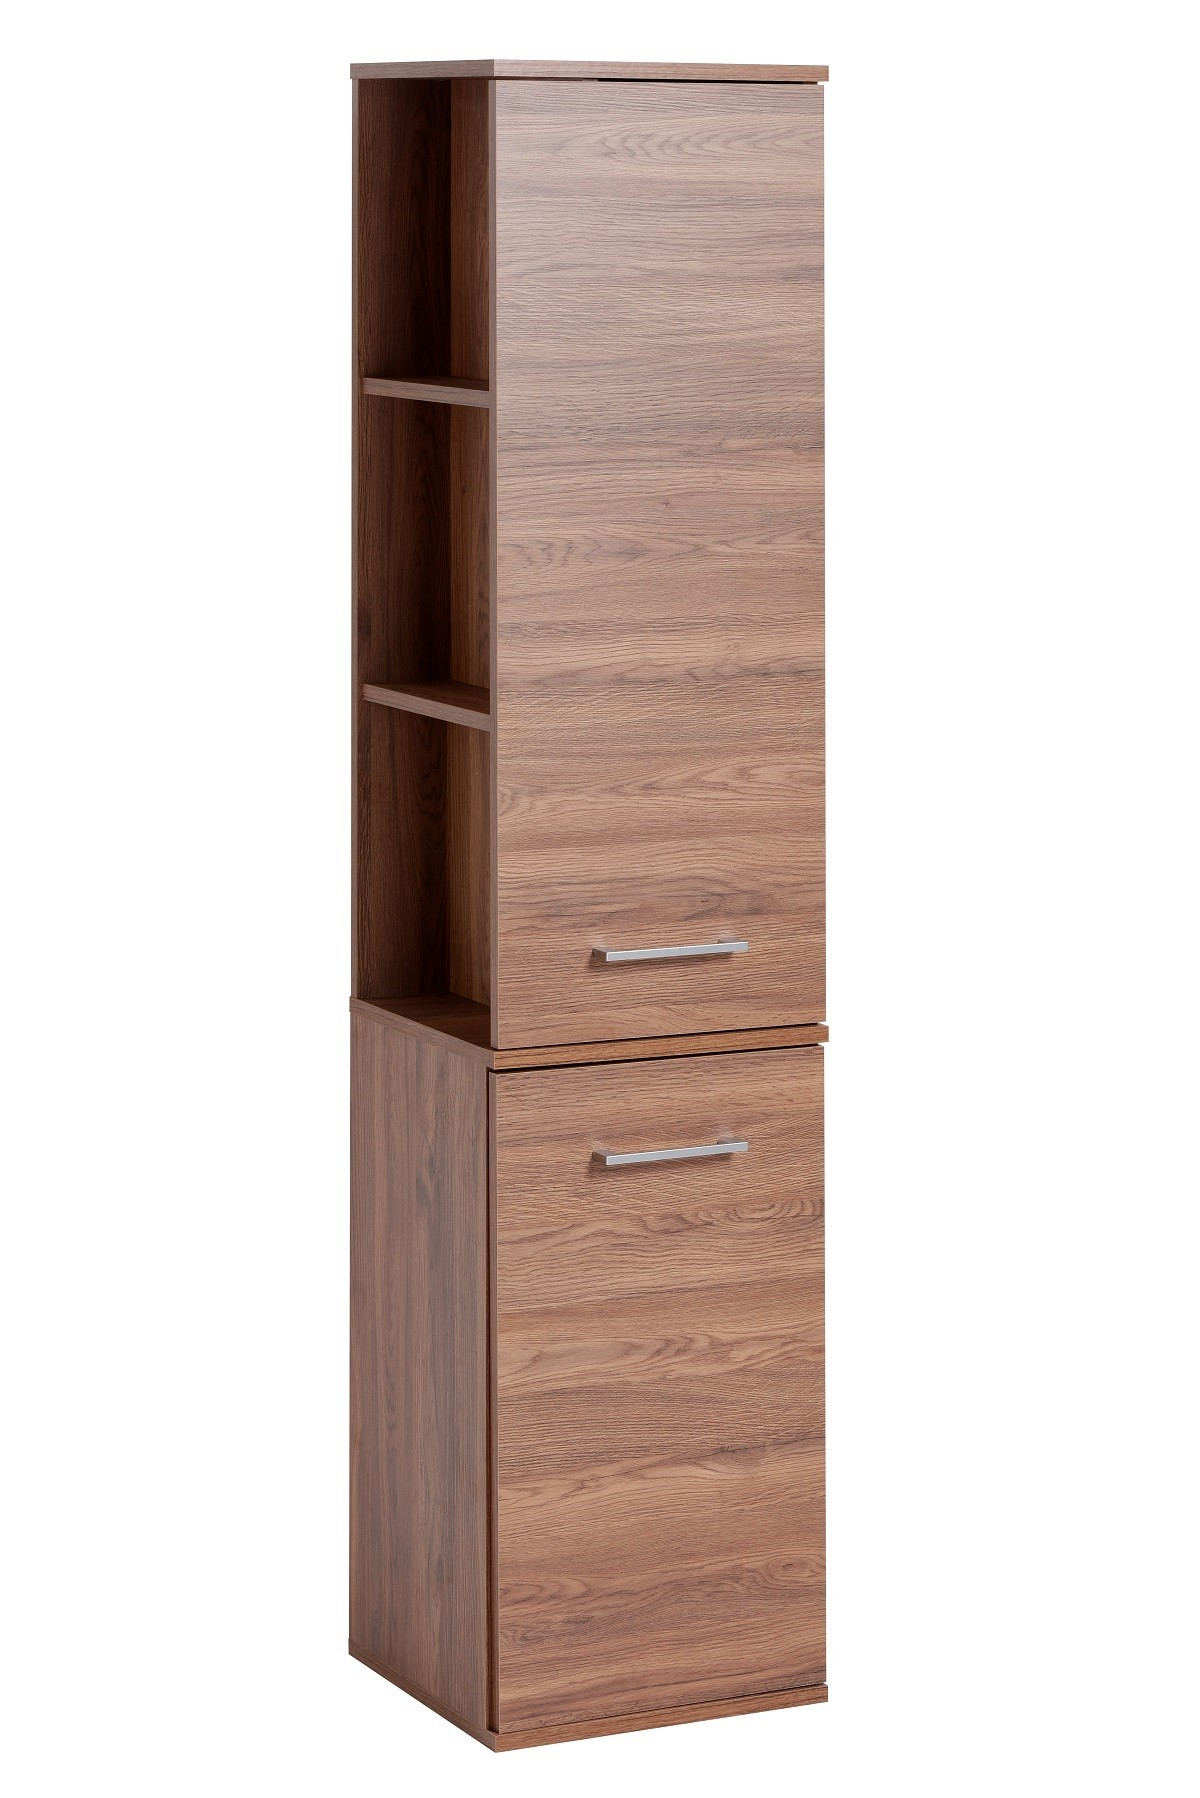 sanifun armoire colonne harmony 35 commande chez le seul. Black Bedroom Furniture Sets. Home Design Ideas